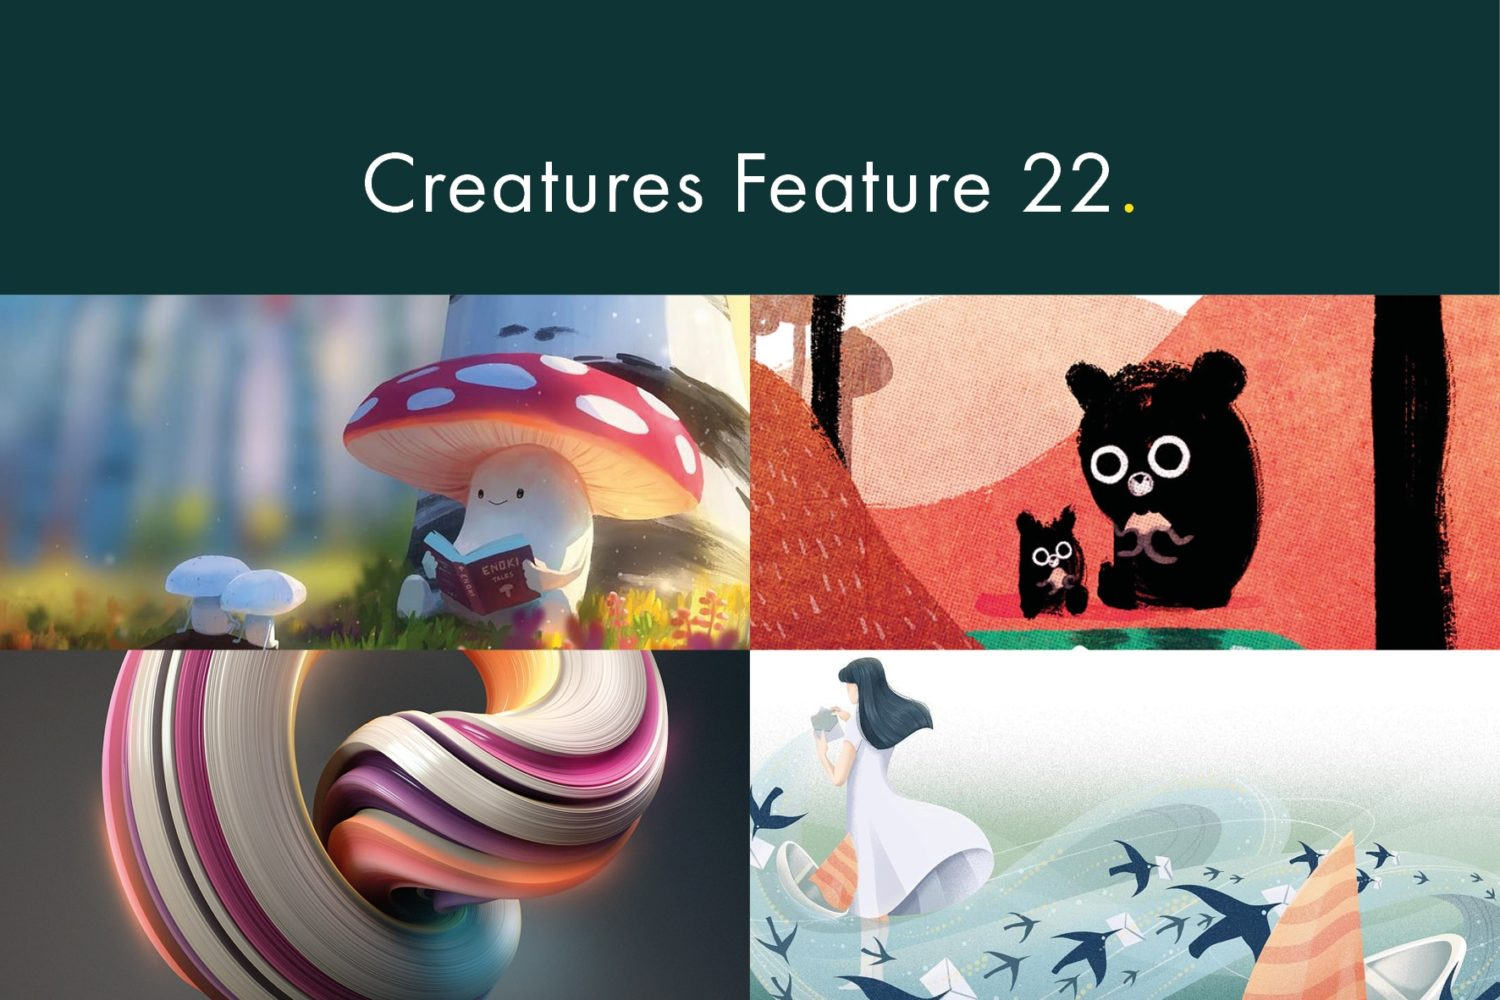 Creatures Feature 22 - mushroom, bears, and birds in wind